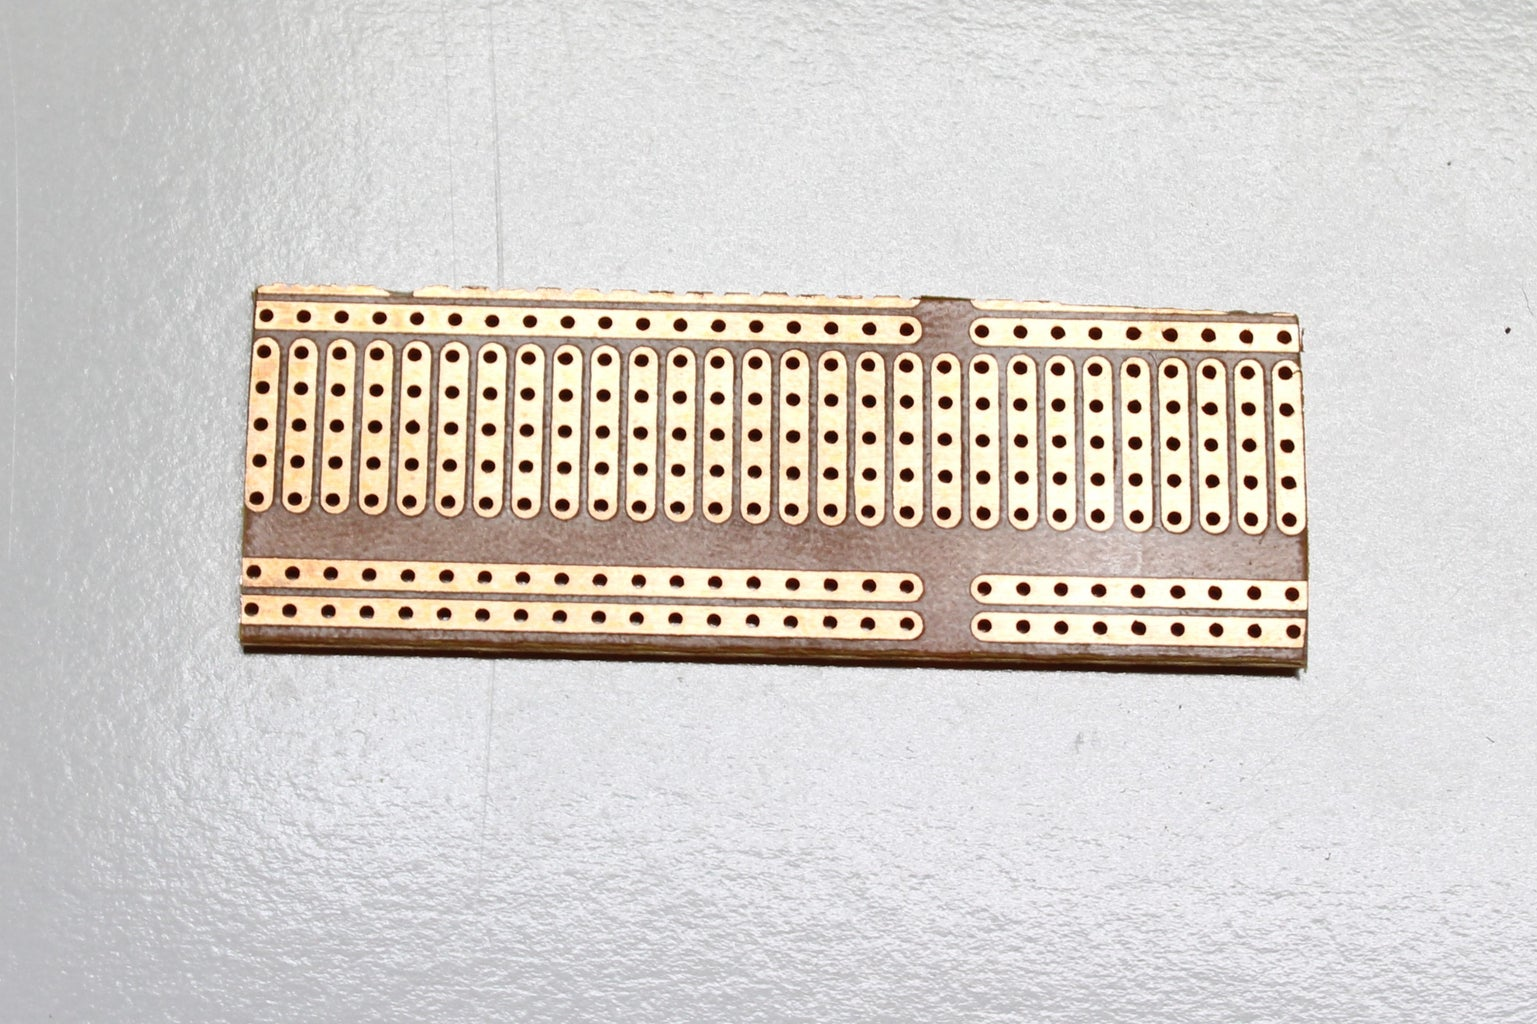 Preparing the Prototype Board for the LED's